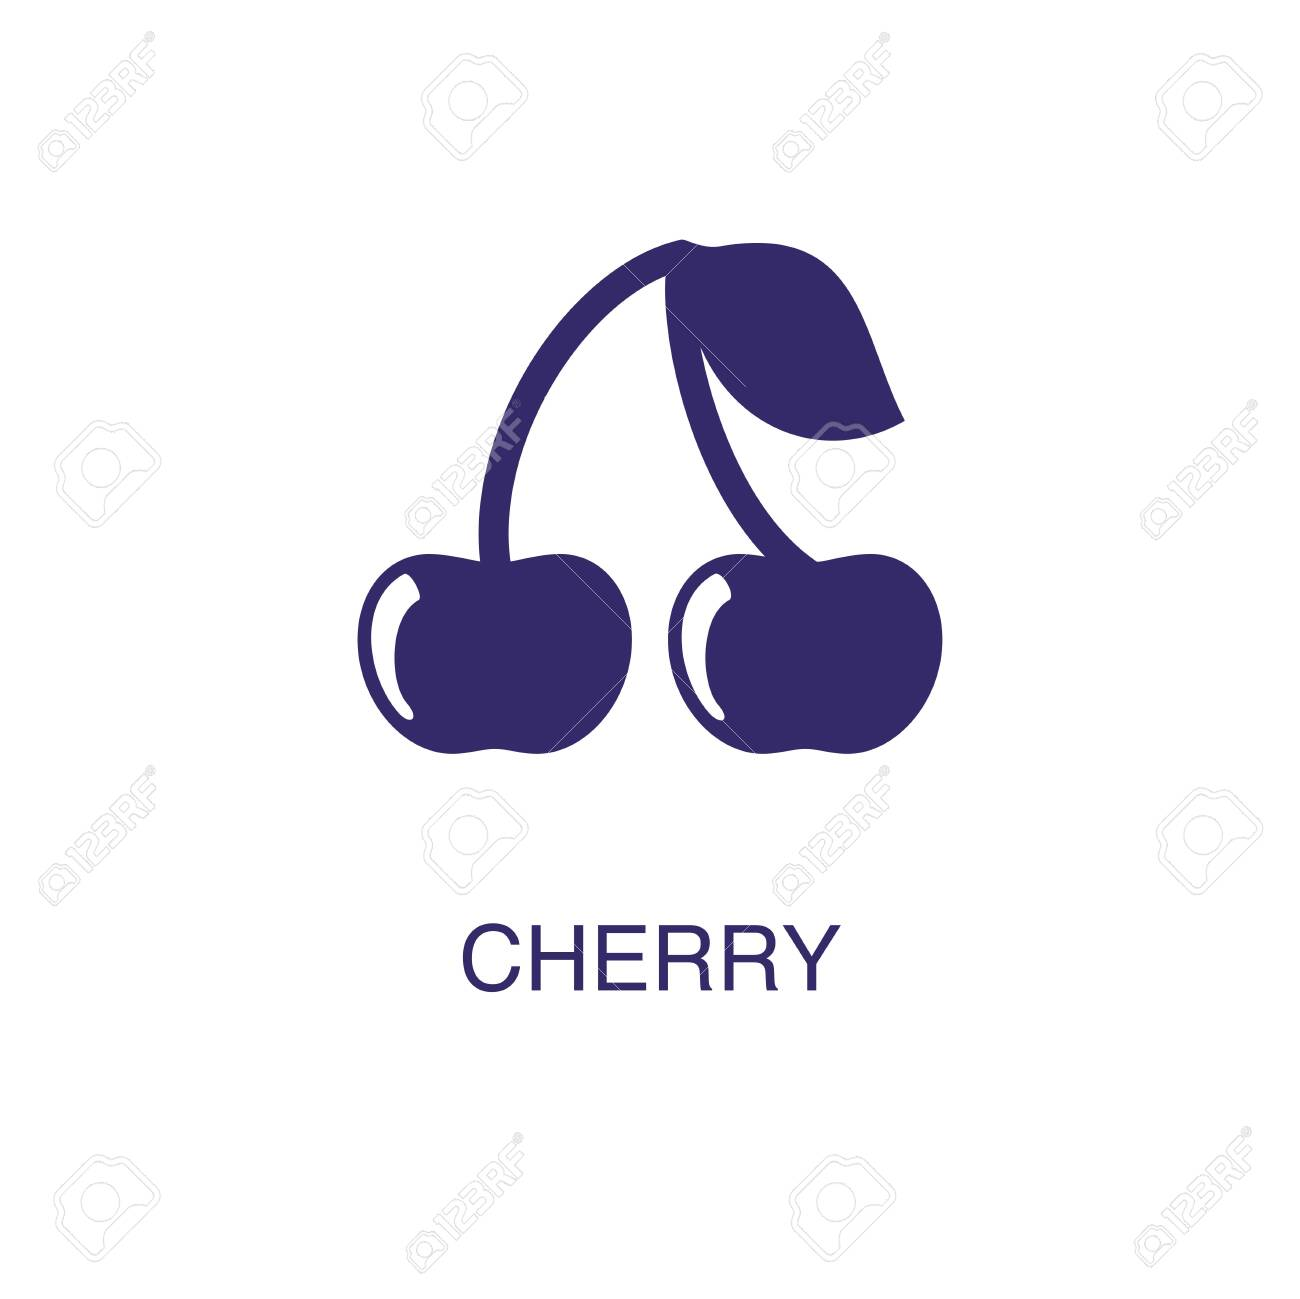 Cherry element in flat simple style on white background. Cherry icon, with text name concept template - 134450595